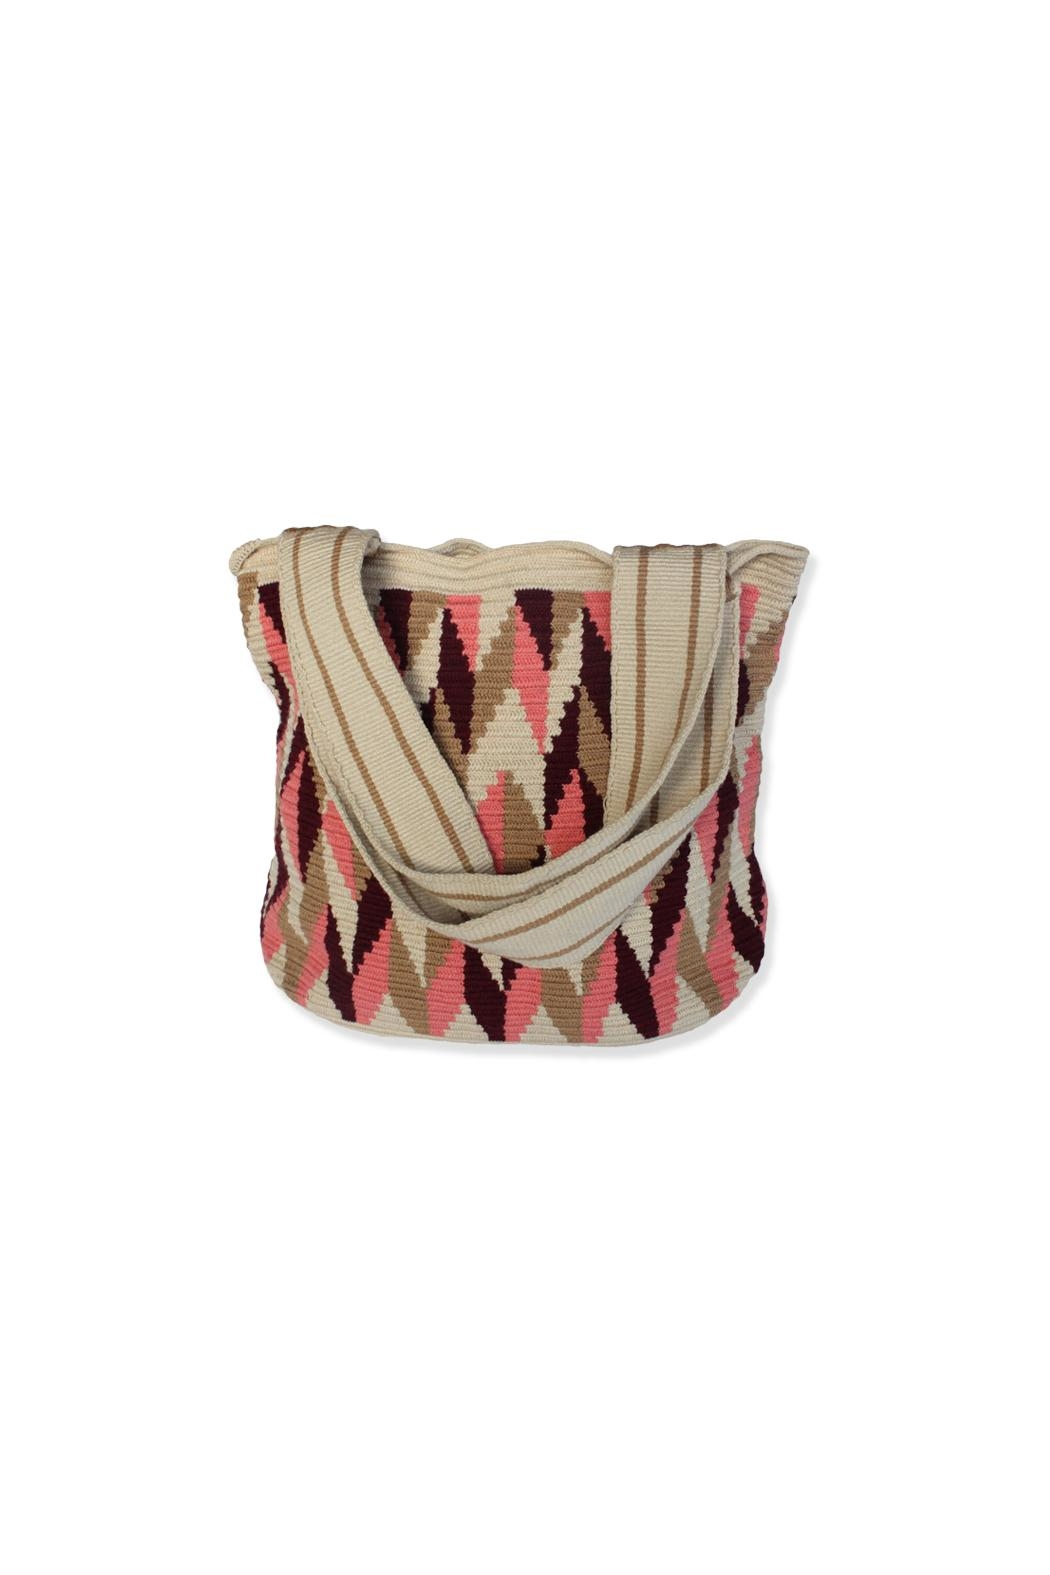 Wayuu Women Project Pink & Brown Totebag - Front Cropped Image